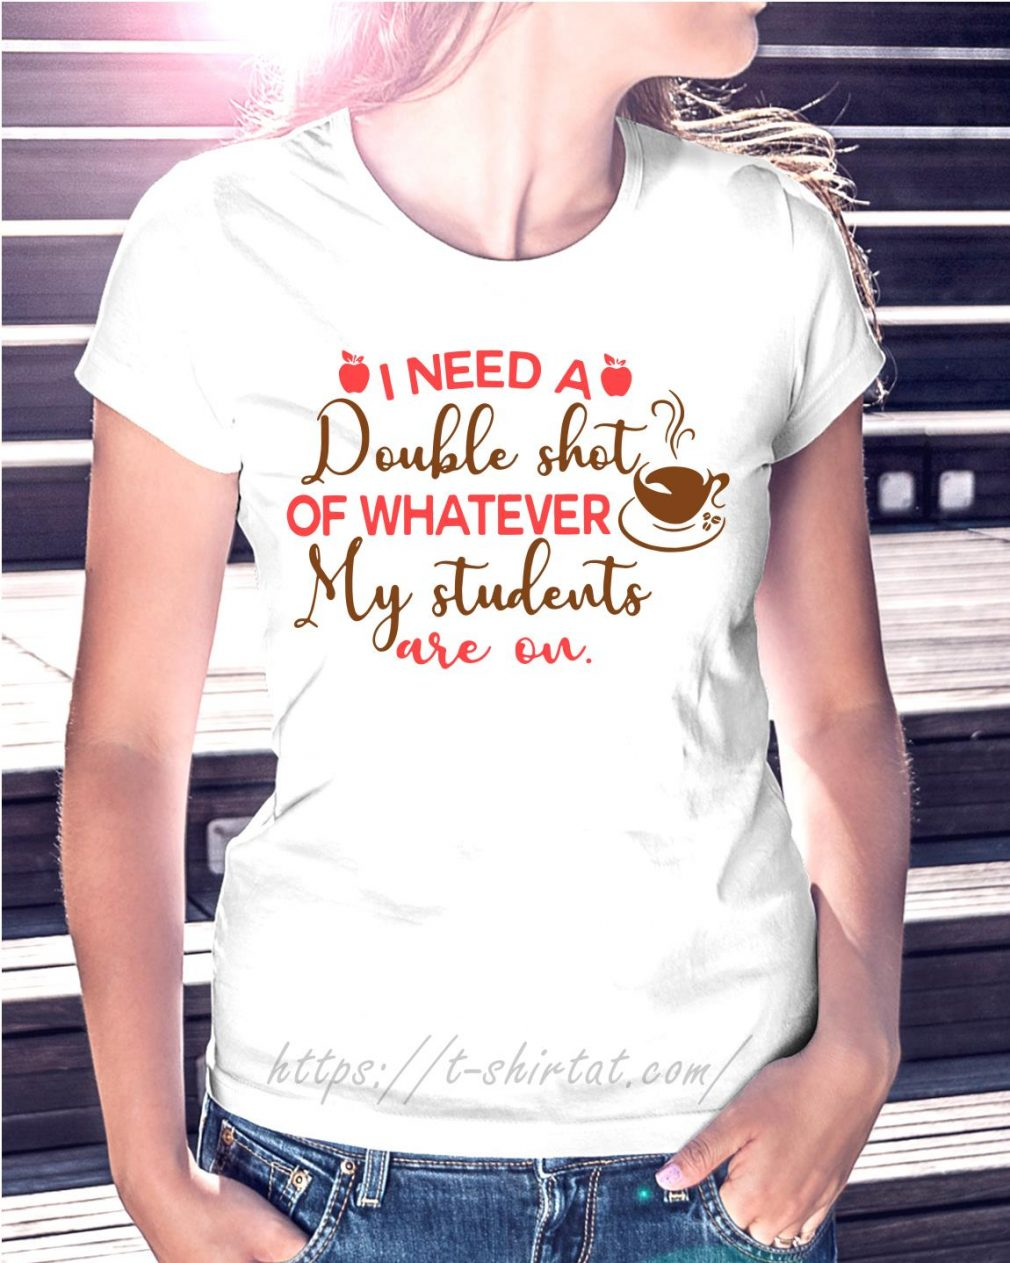 I need a double shot of whatever my students are on